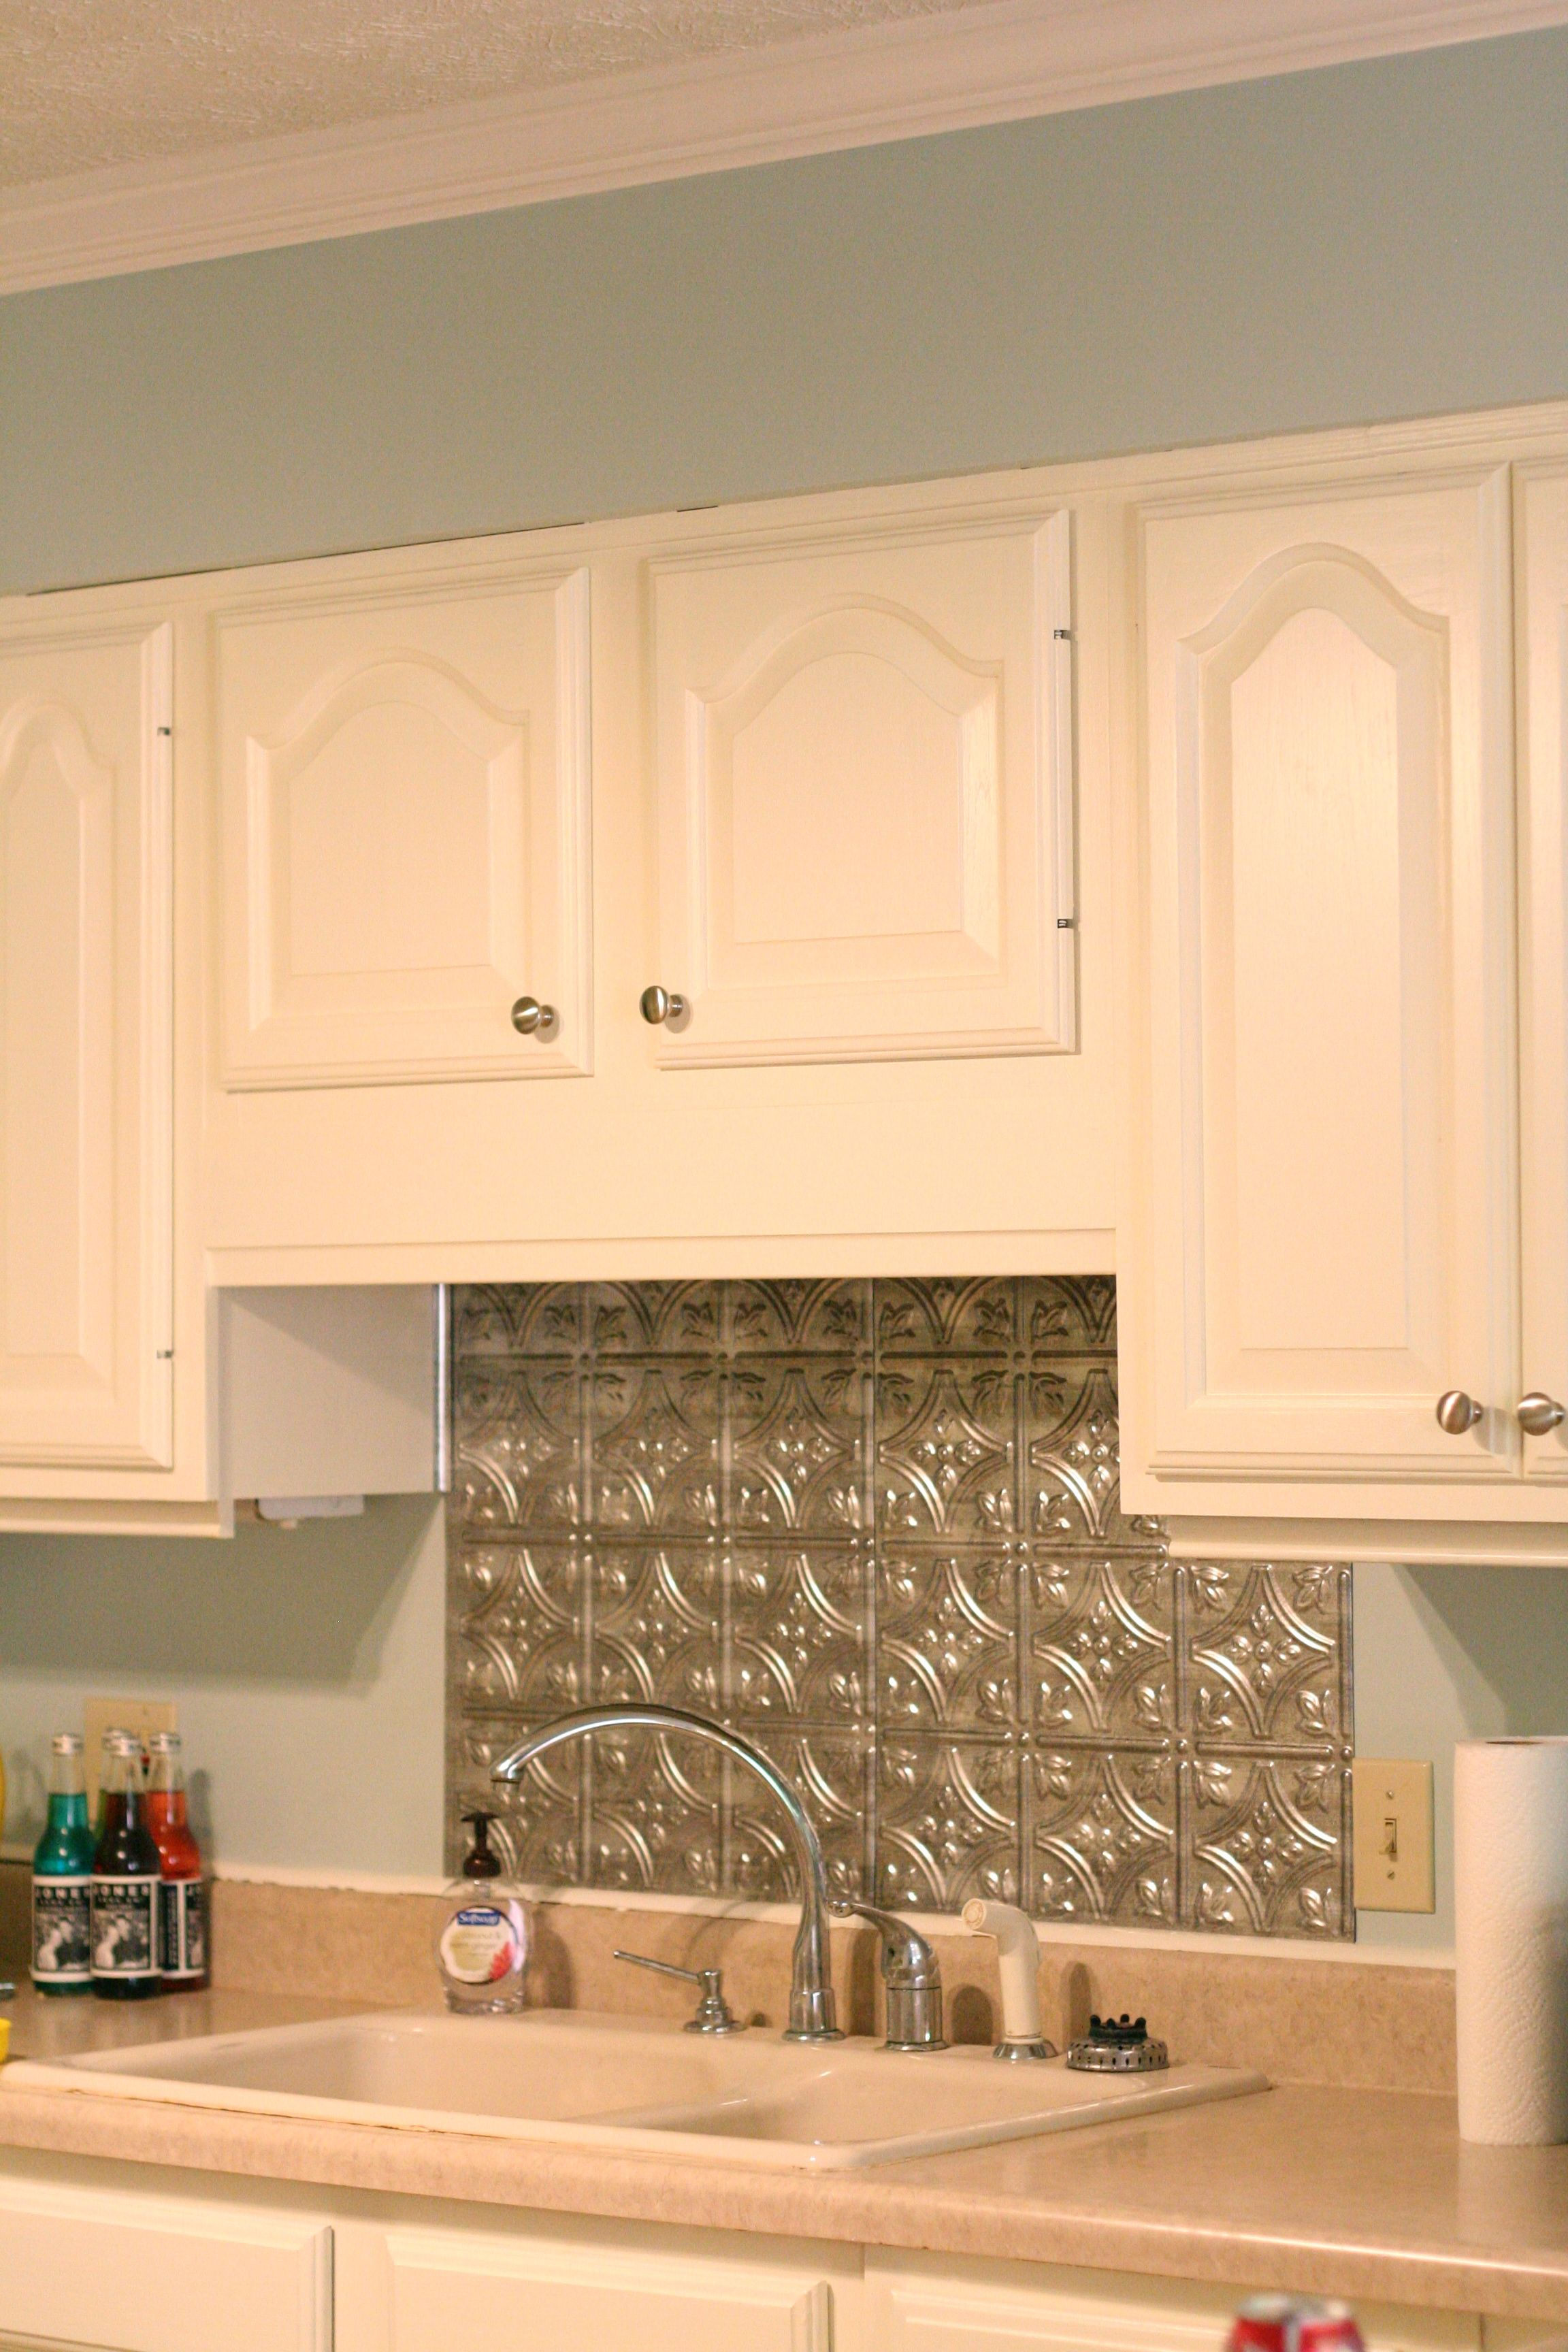 Our New Faux Tin Backsplash And Newly Painted Cabinets And Walls